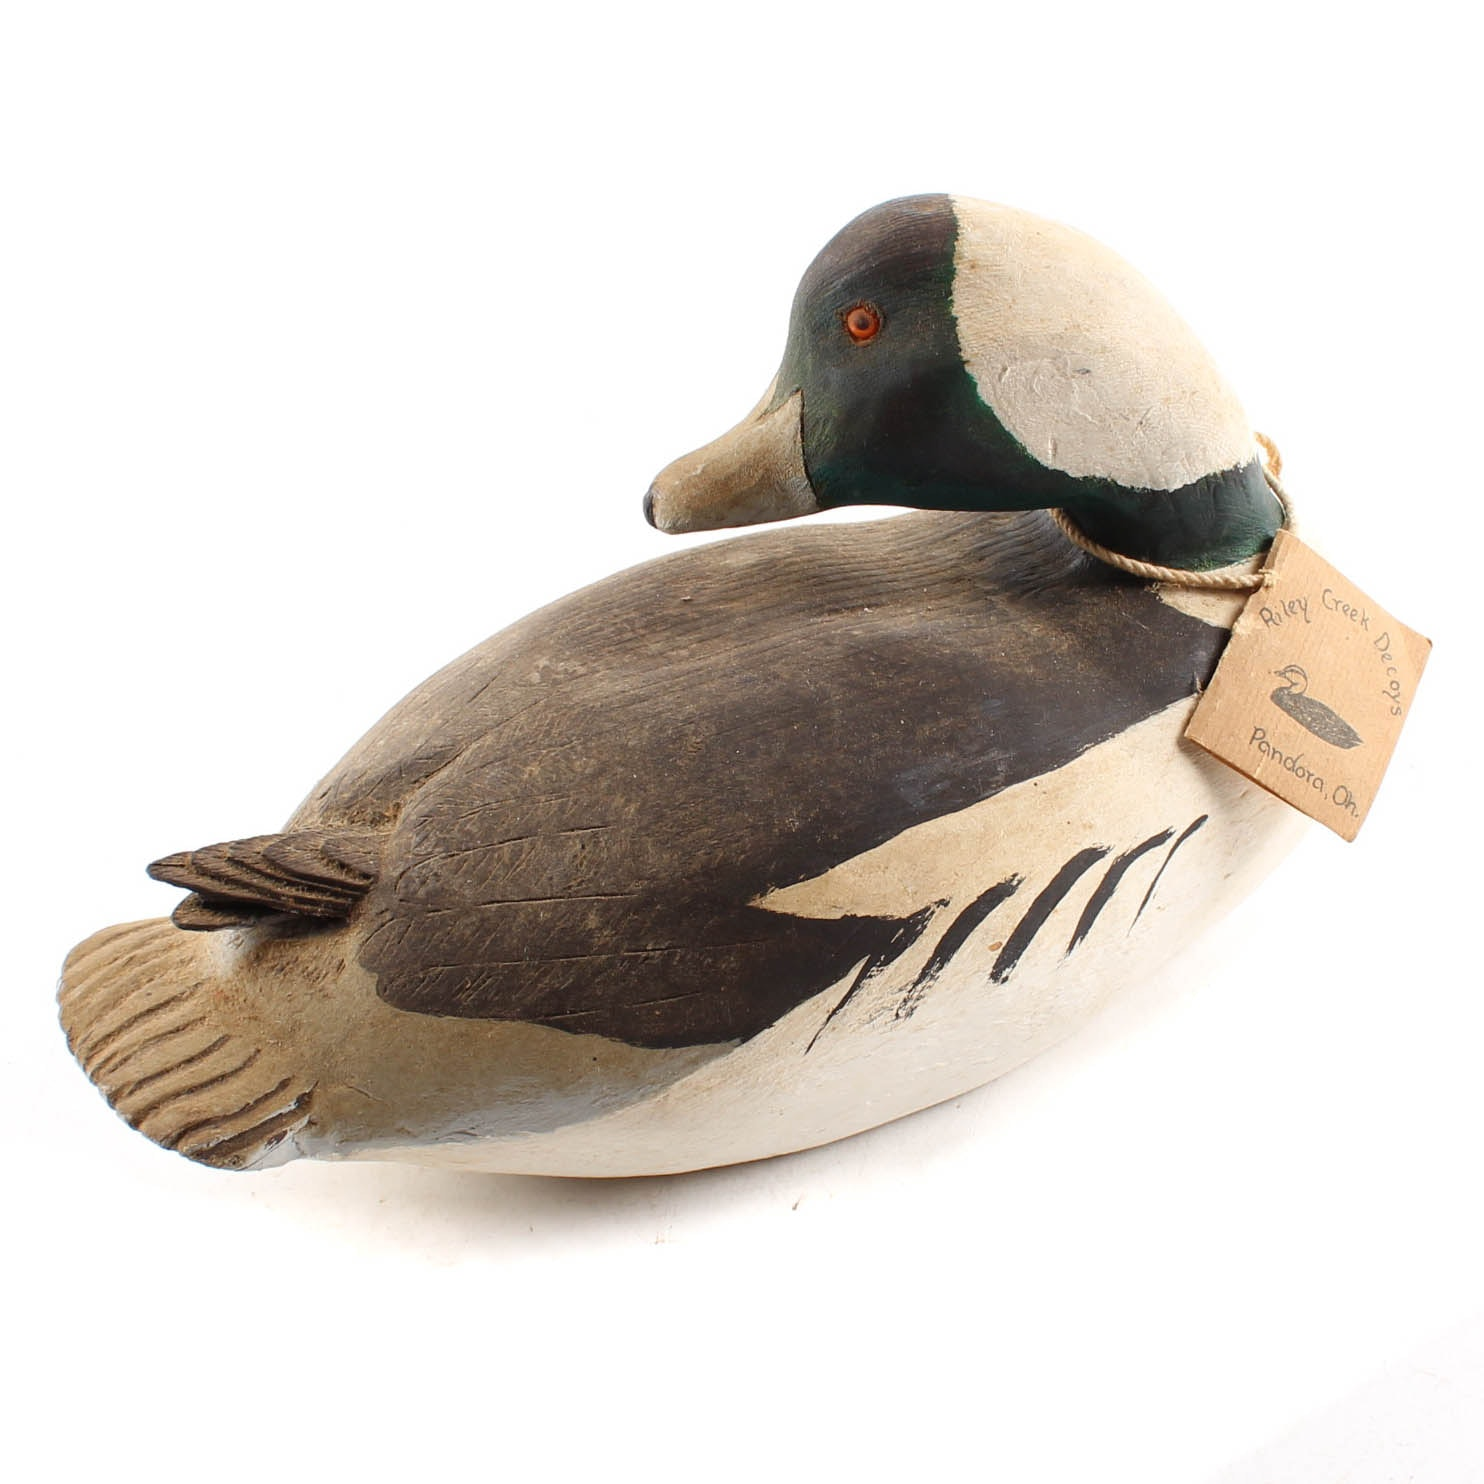 Wallace Lugibihl Hand-Carved Wooden Decoy Duck